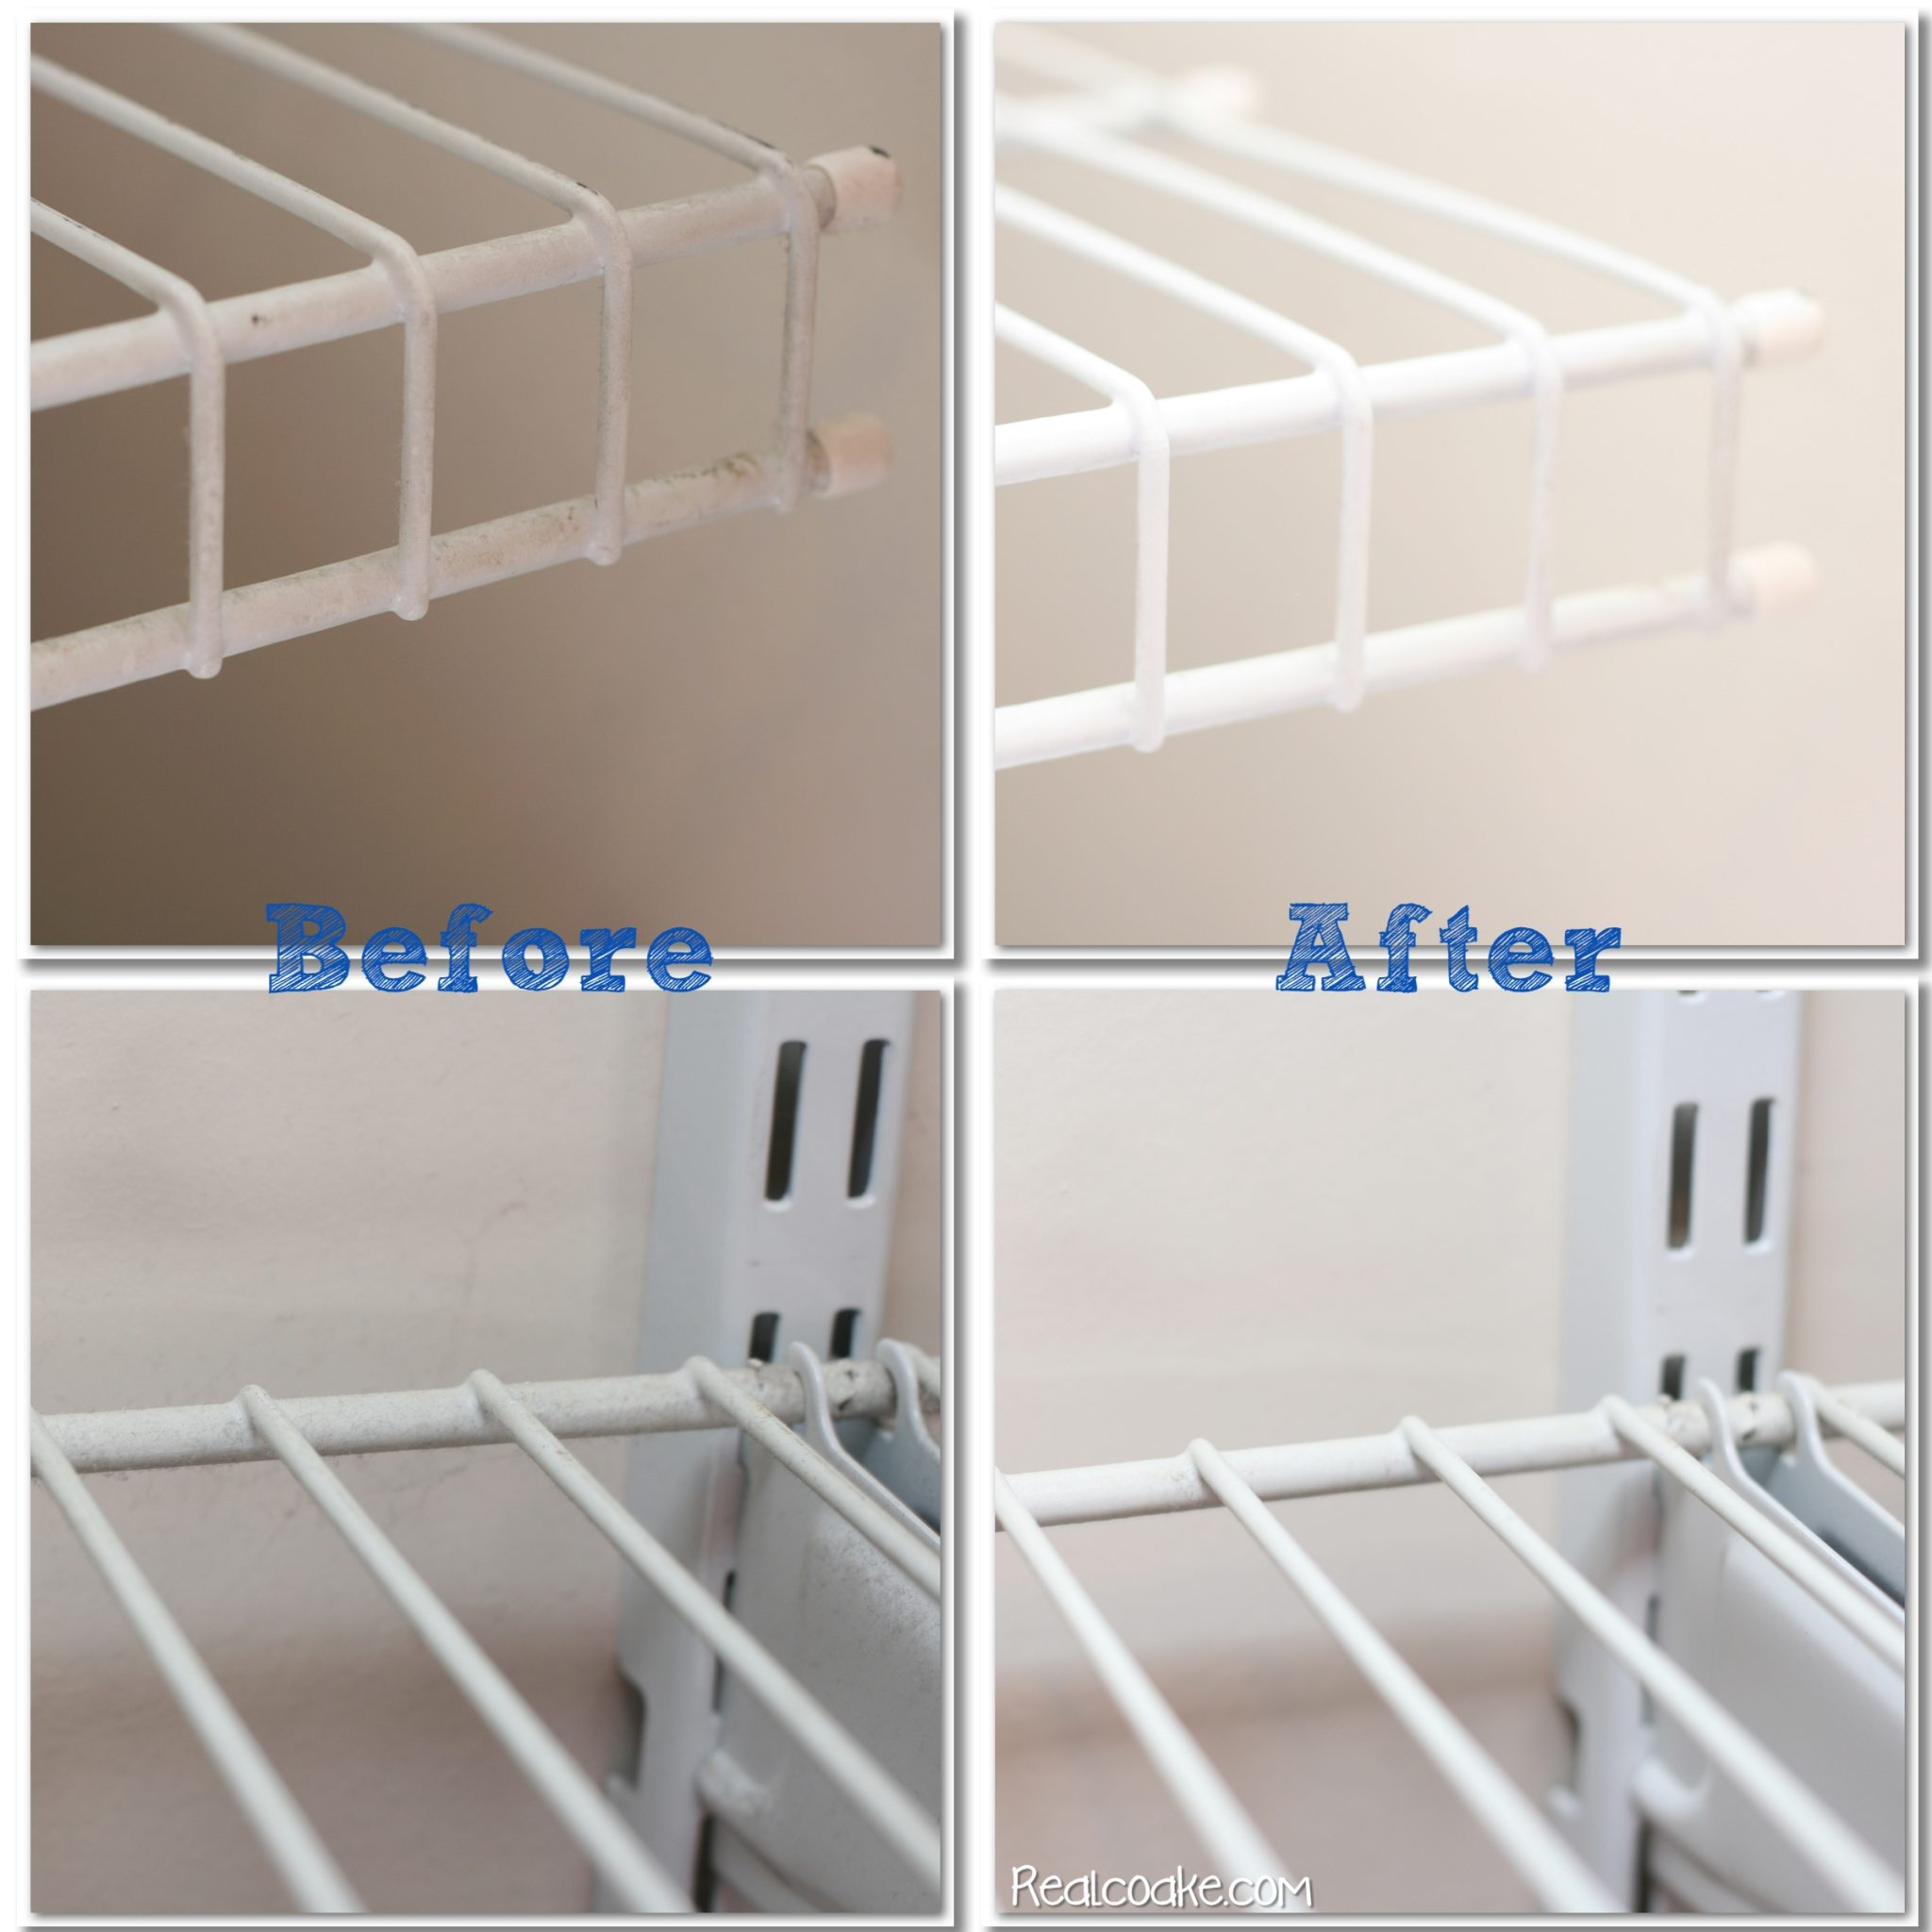 DIY Cleaning Wire Shelves on interior shelves, wood shelves, piping shelves, three shelves, plumbing shelves, concrete shelves, kitchen shelves, frame shelves, radiator shelves, parts shelves, security shelves, drywall shelves, blue shelves, welding shelves,